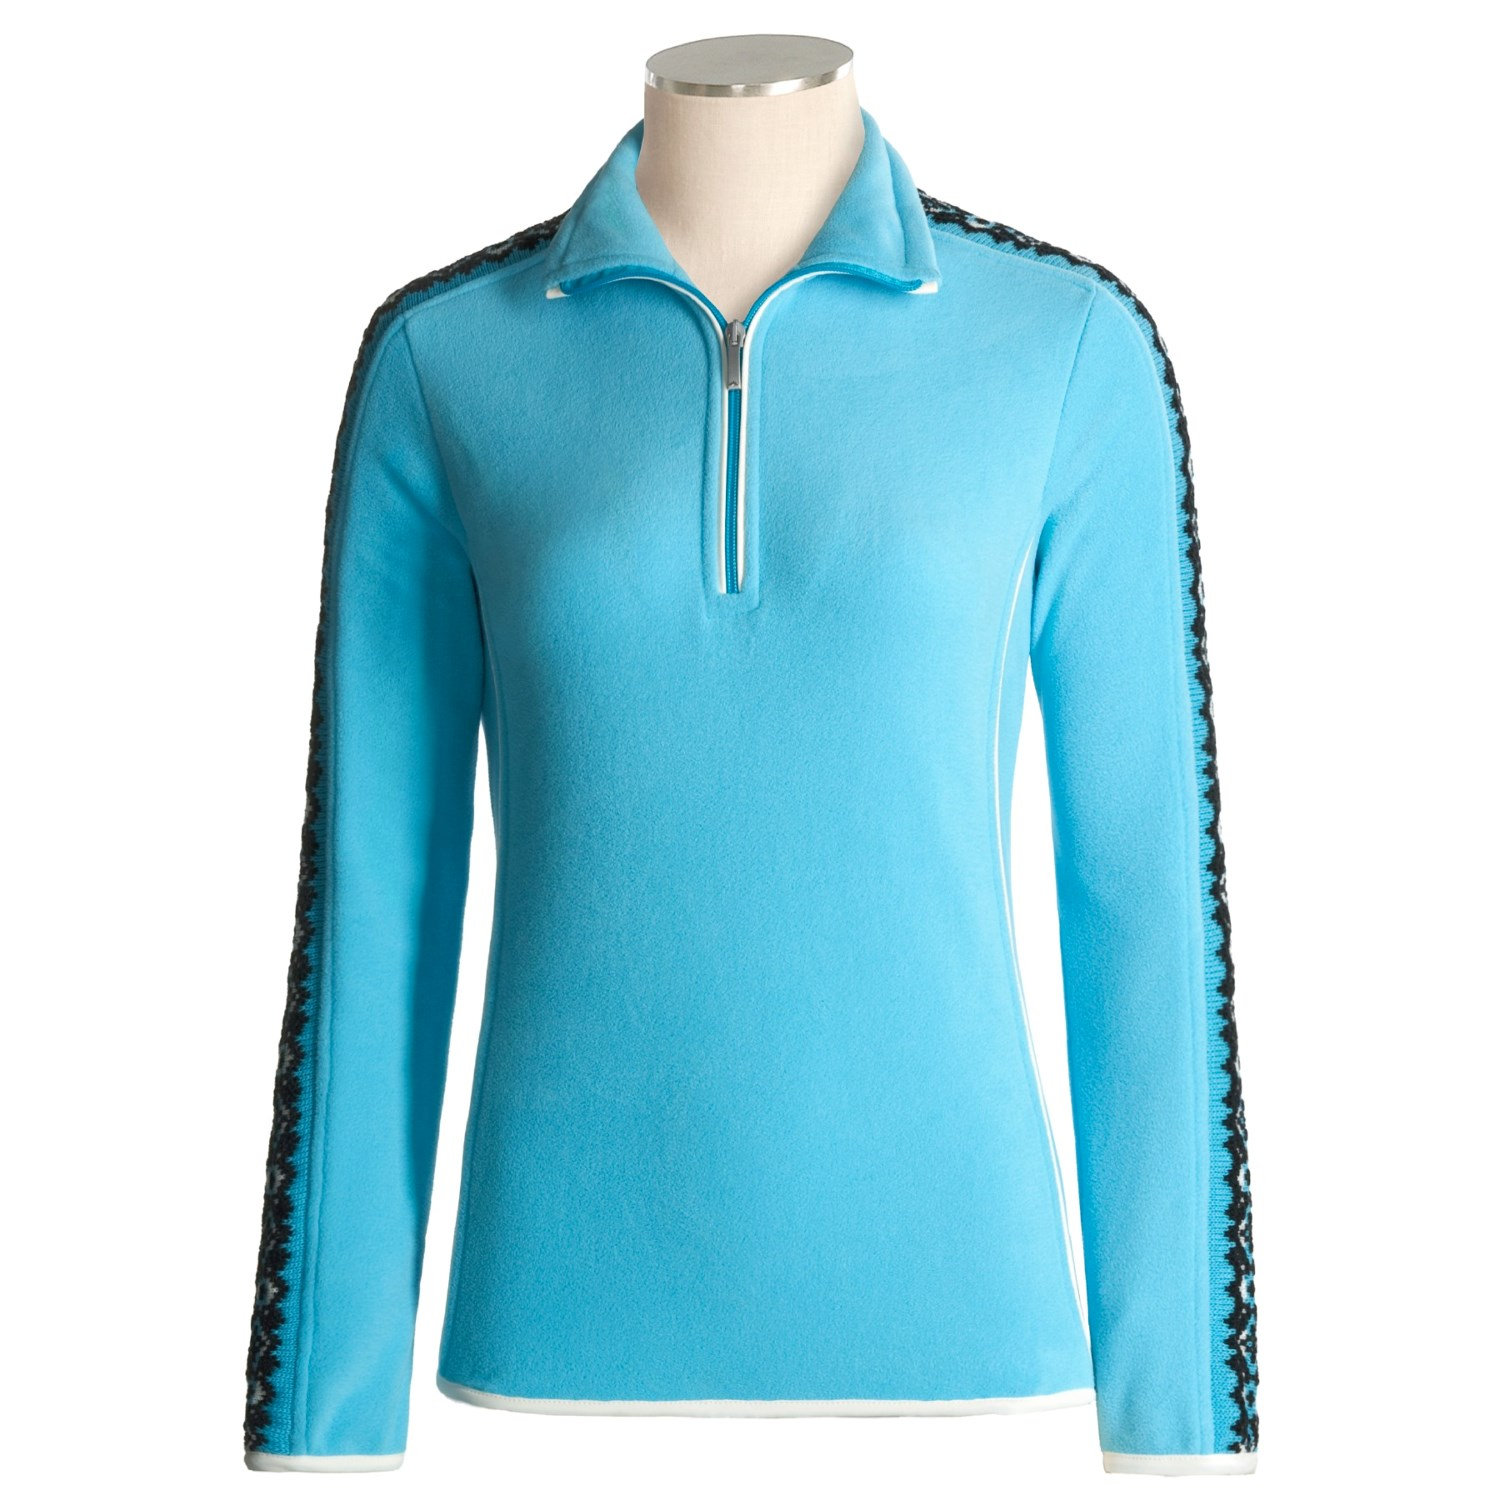 Arm Knitting Pullover : Disegna d italia fleece pullover for women save